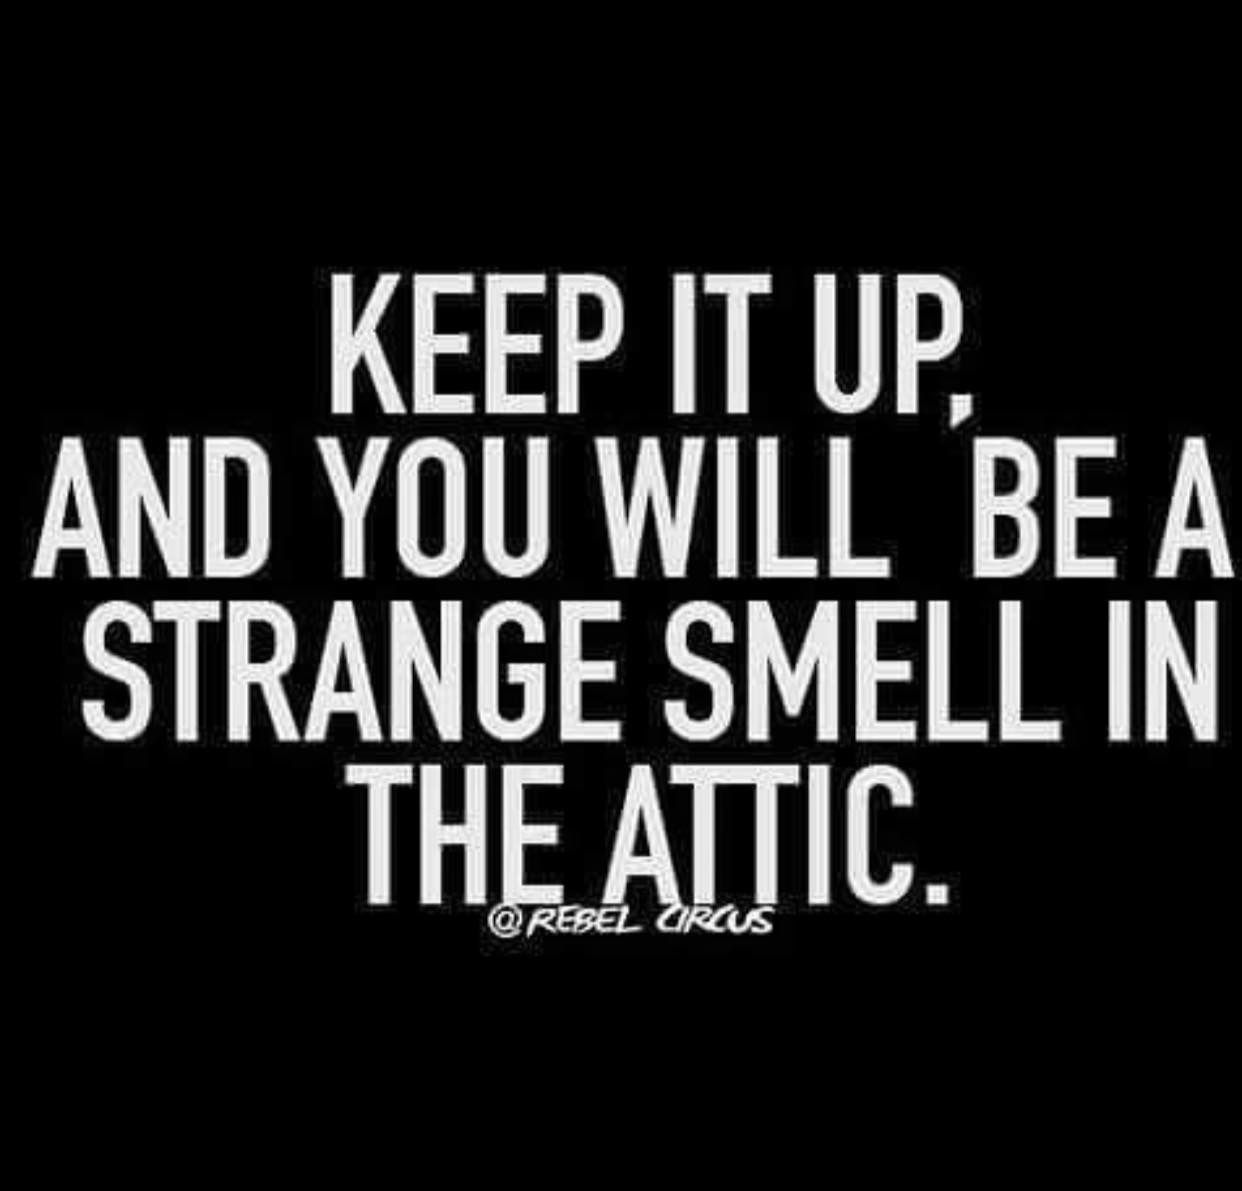 Keep It Up And You Will Be A Strange Smell In The Attic